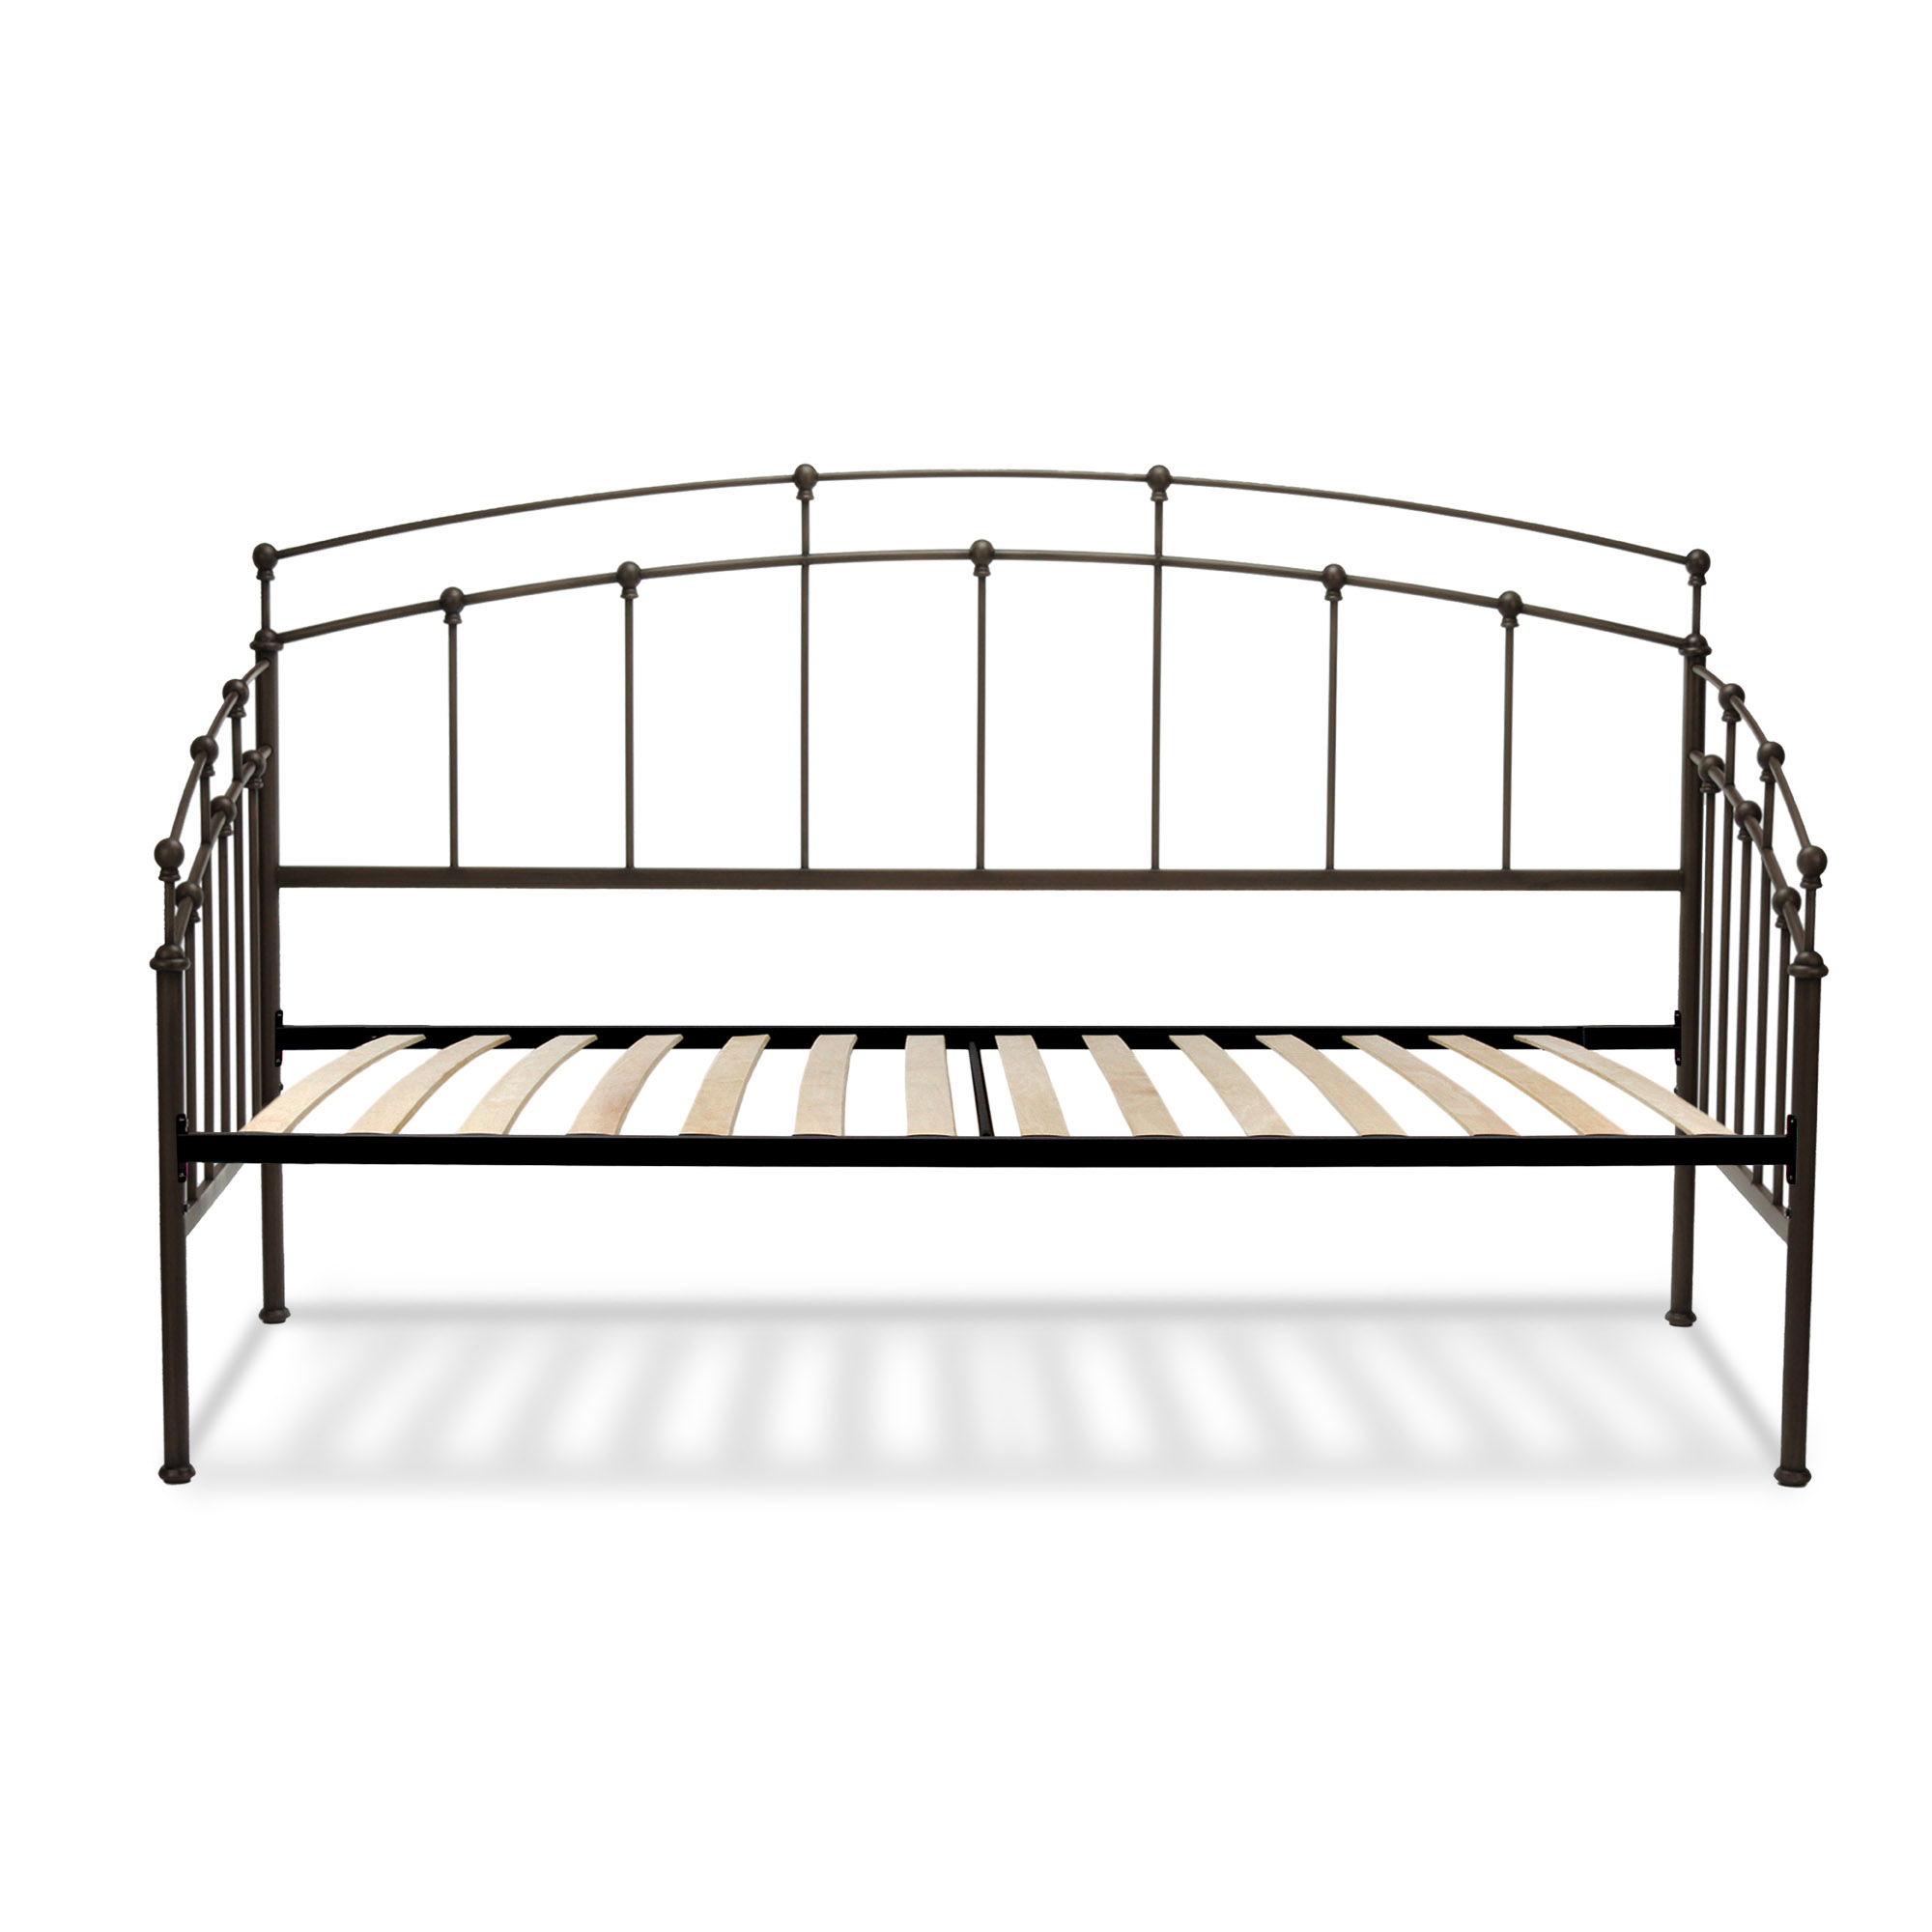 Fenton Complete Metal Daybed with Euro Top Spring Support Frame and Gentle Curves, Black Walnut Finish, Twin